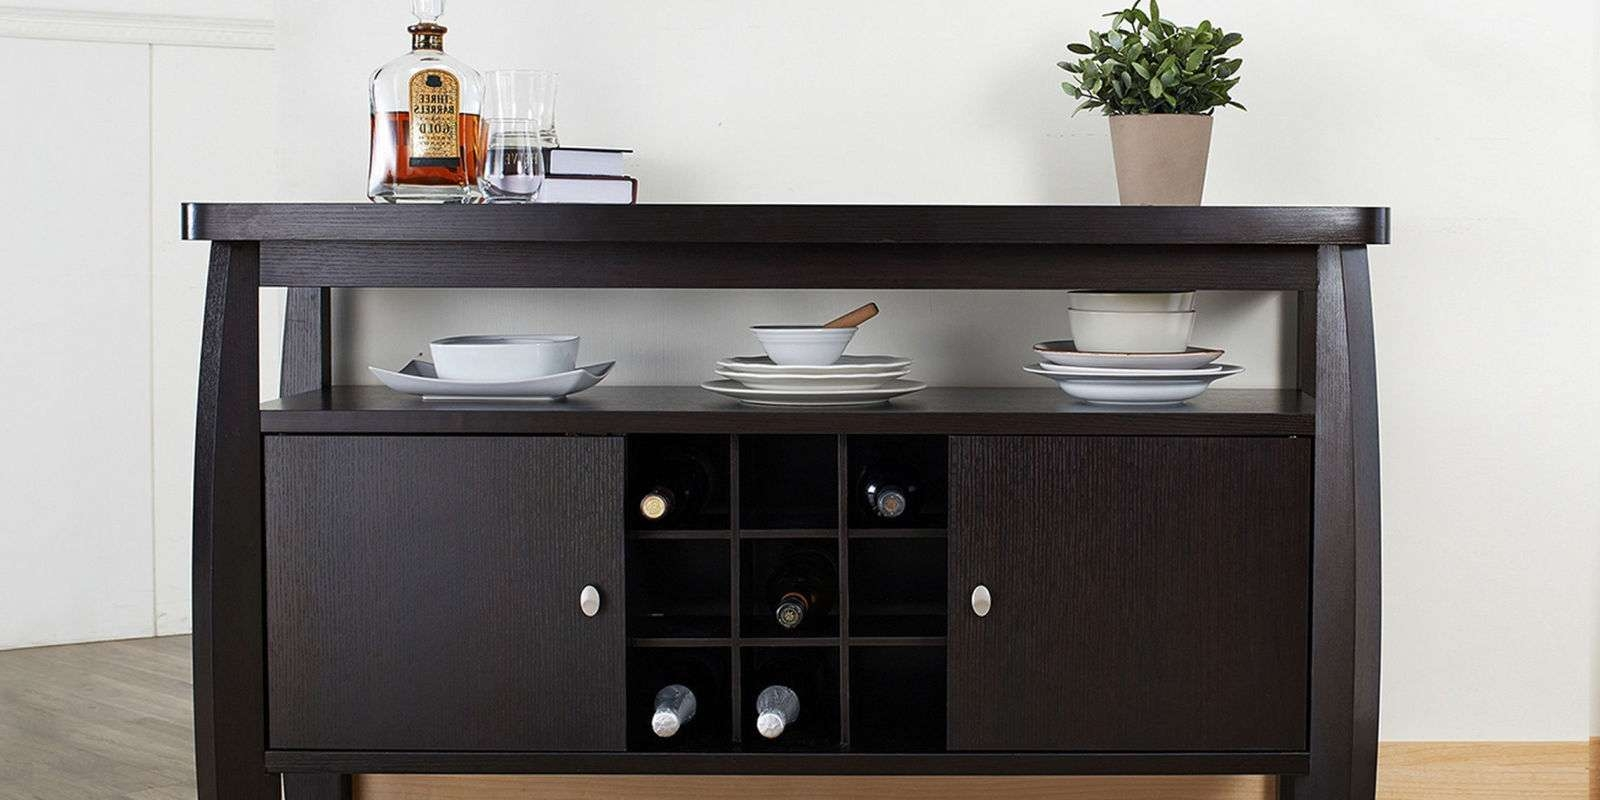 11 Best Sideboards And Buffets In 2018 – Reviews Of Sideboards Pertaining To Sideboards Buffet Furniture (View 6 of 20)